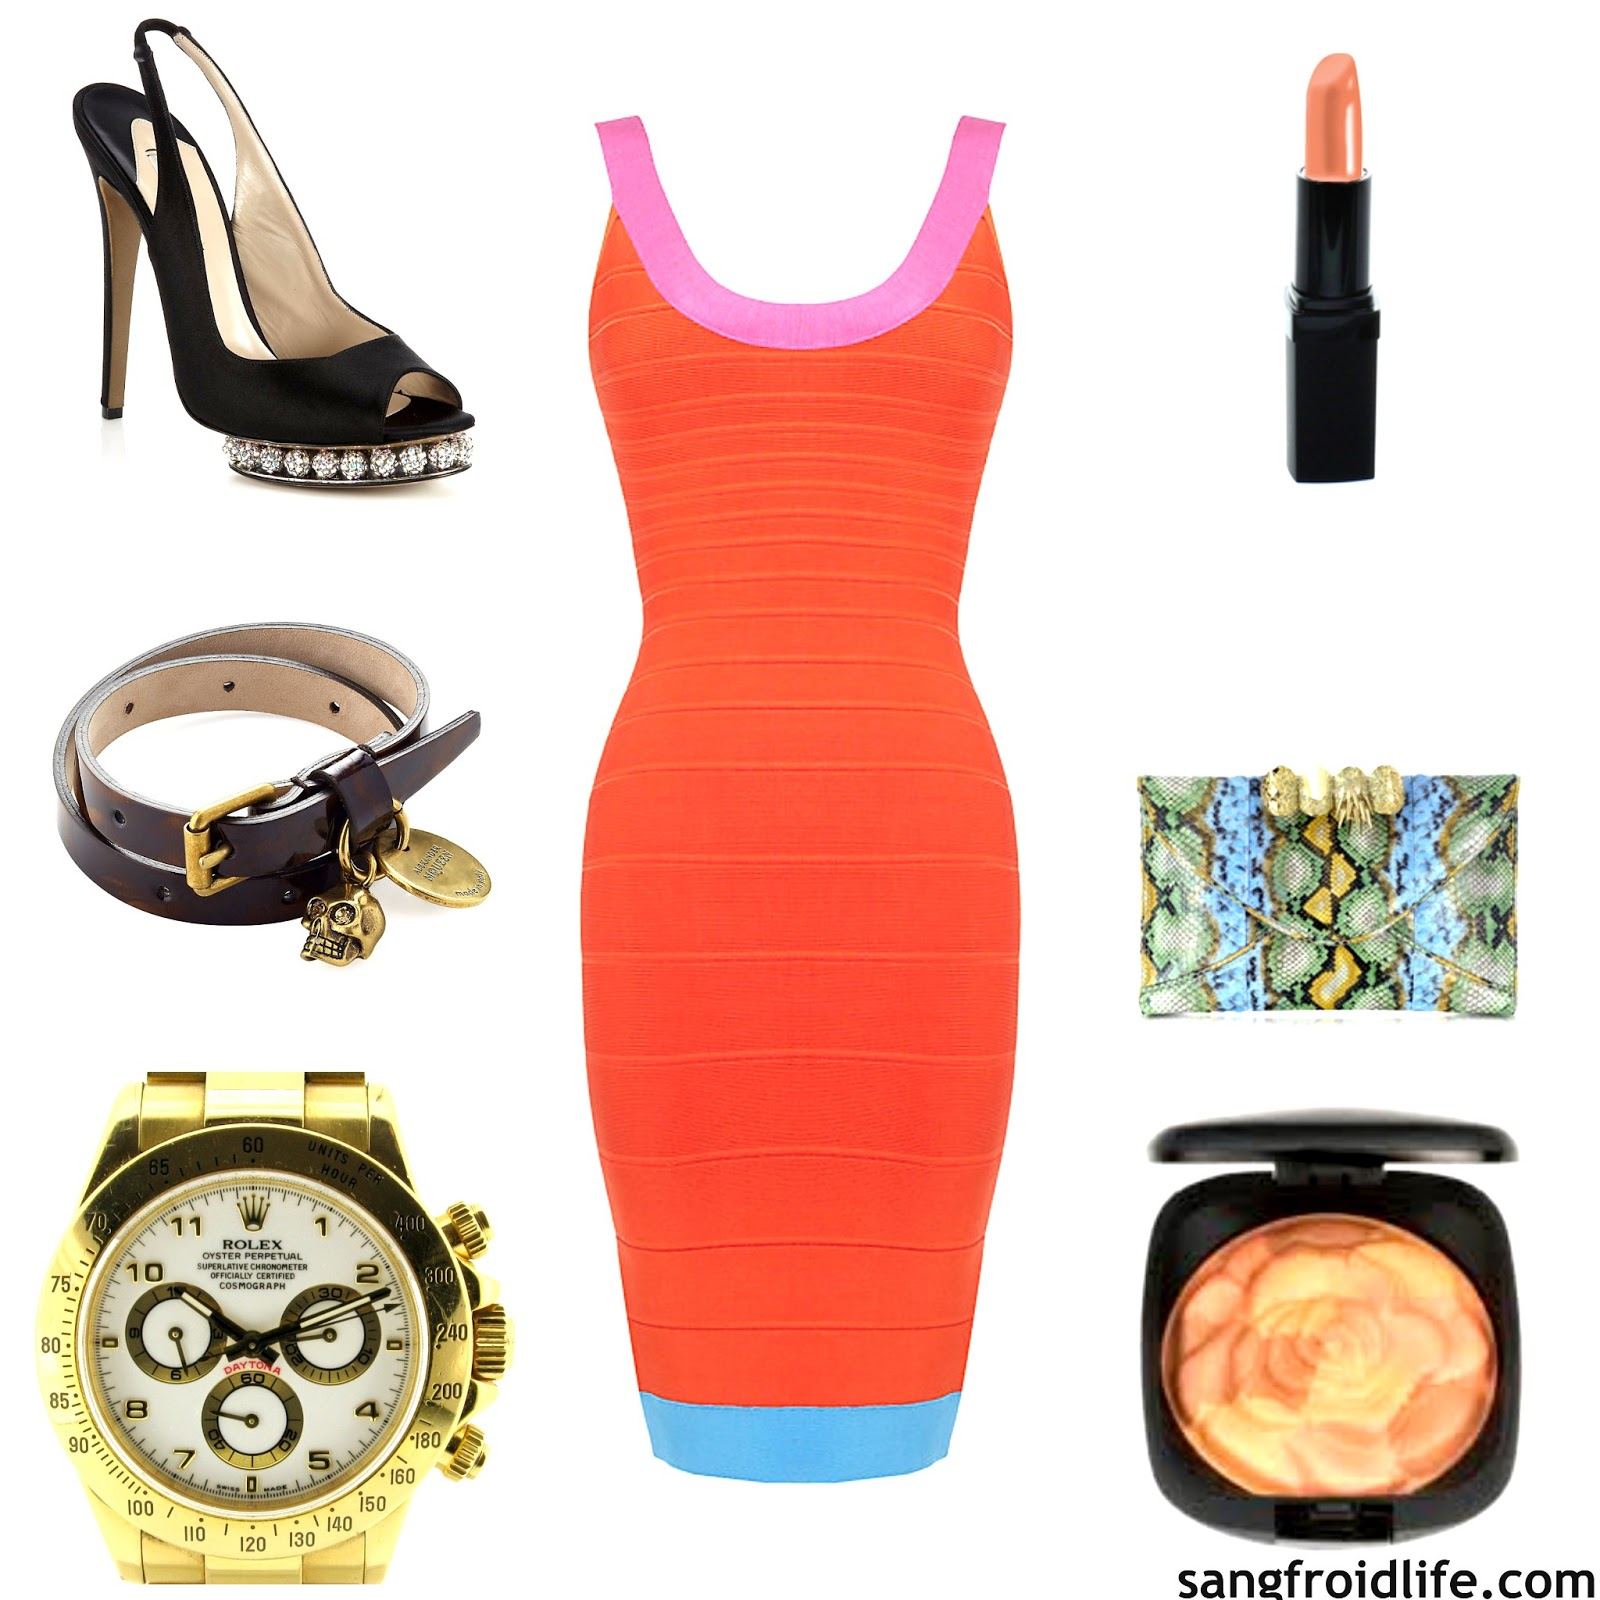 Rolex gold watch, herve orange dress, cream nude lipstick, floral blush